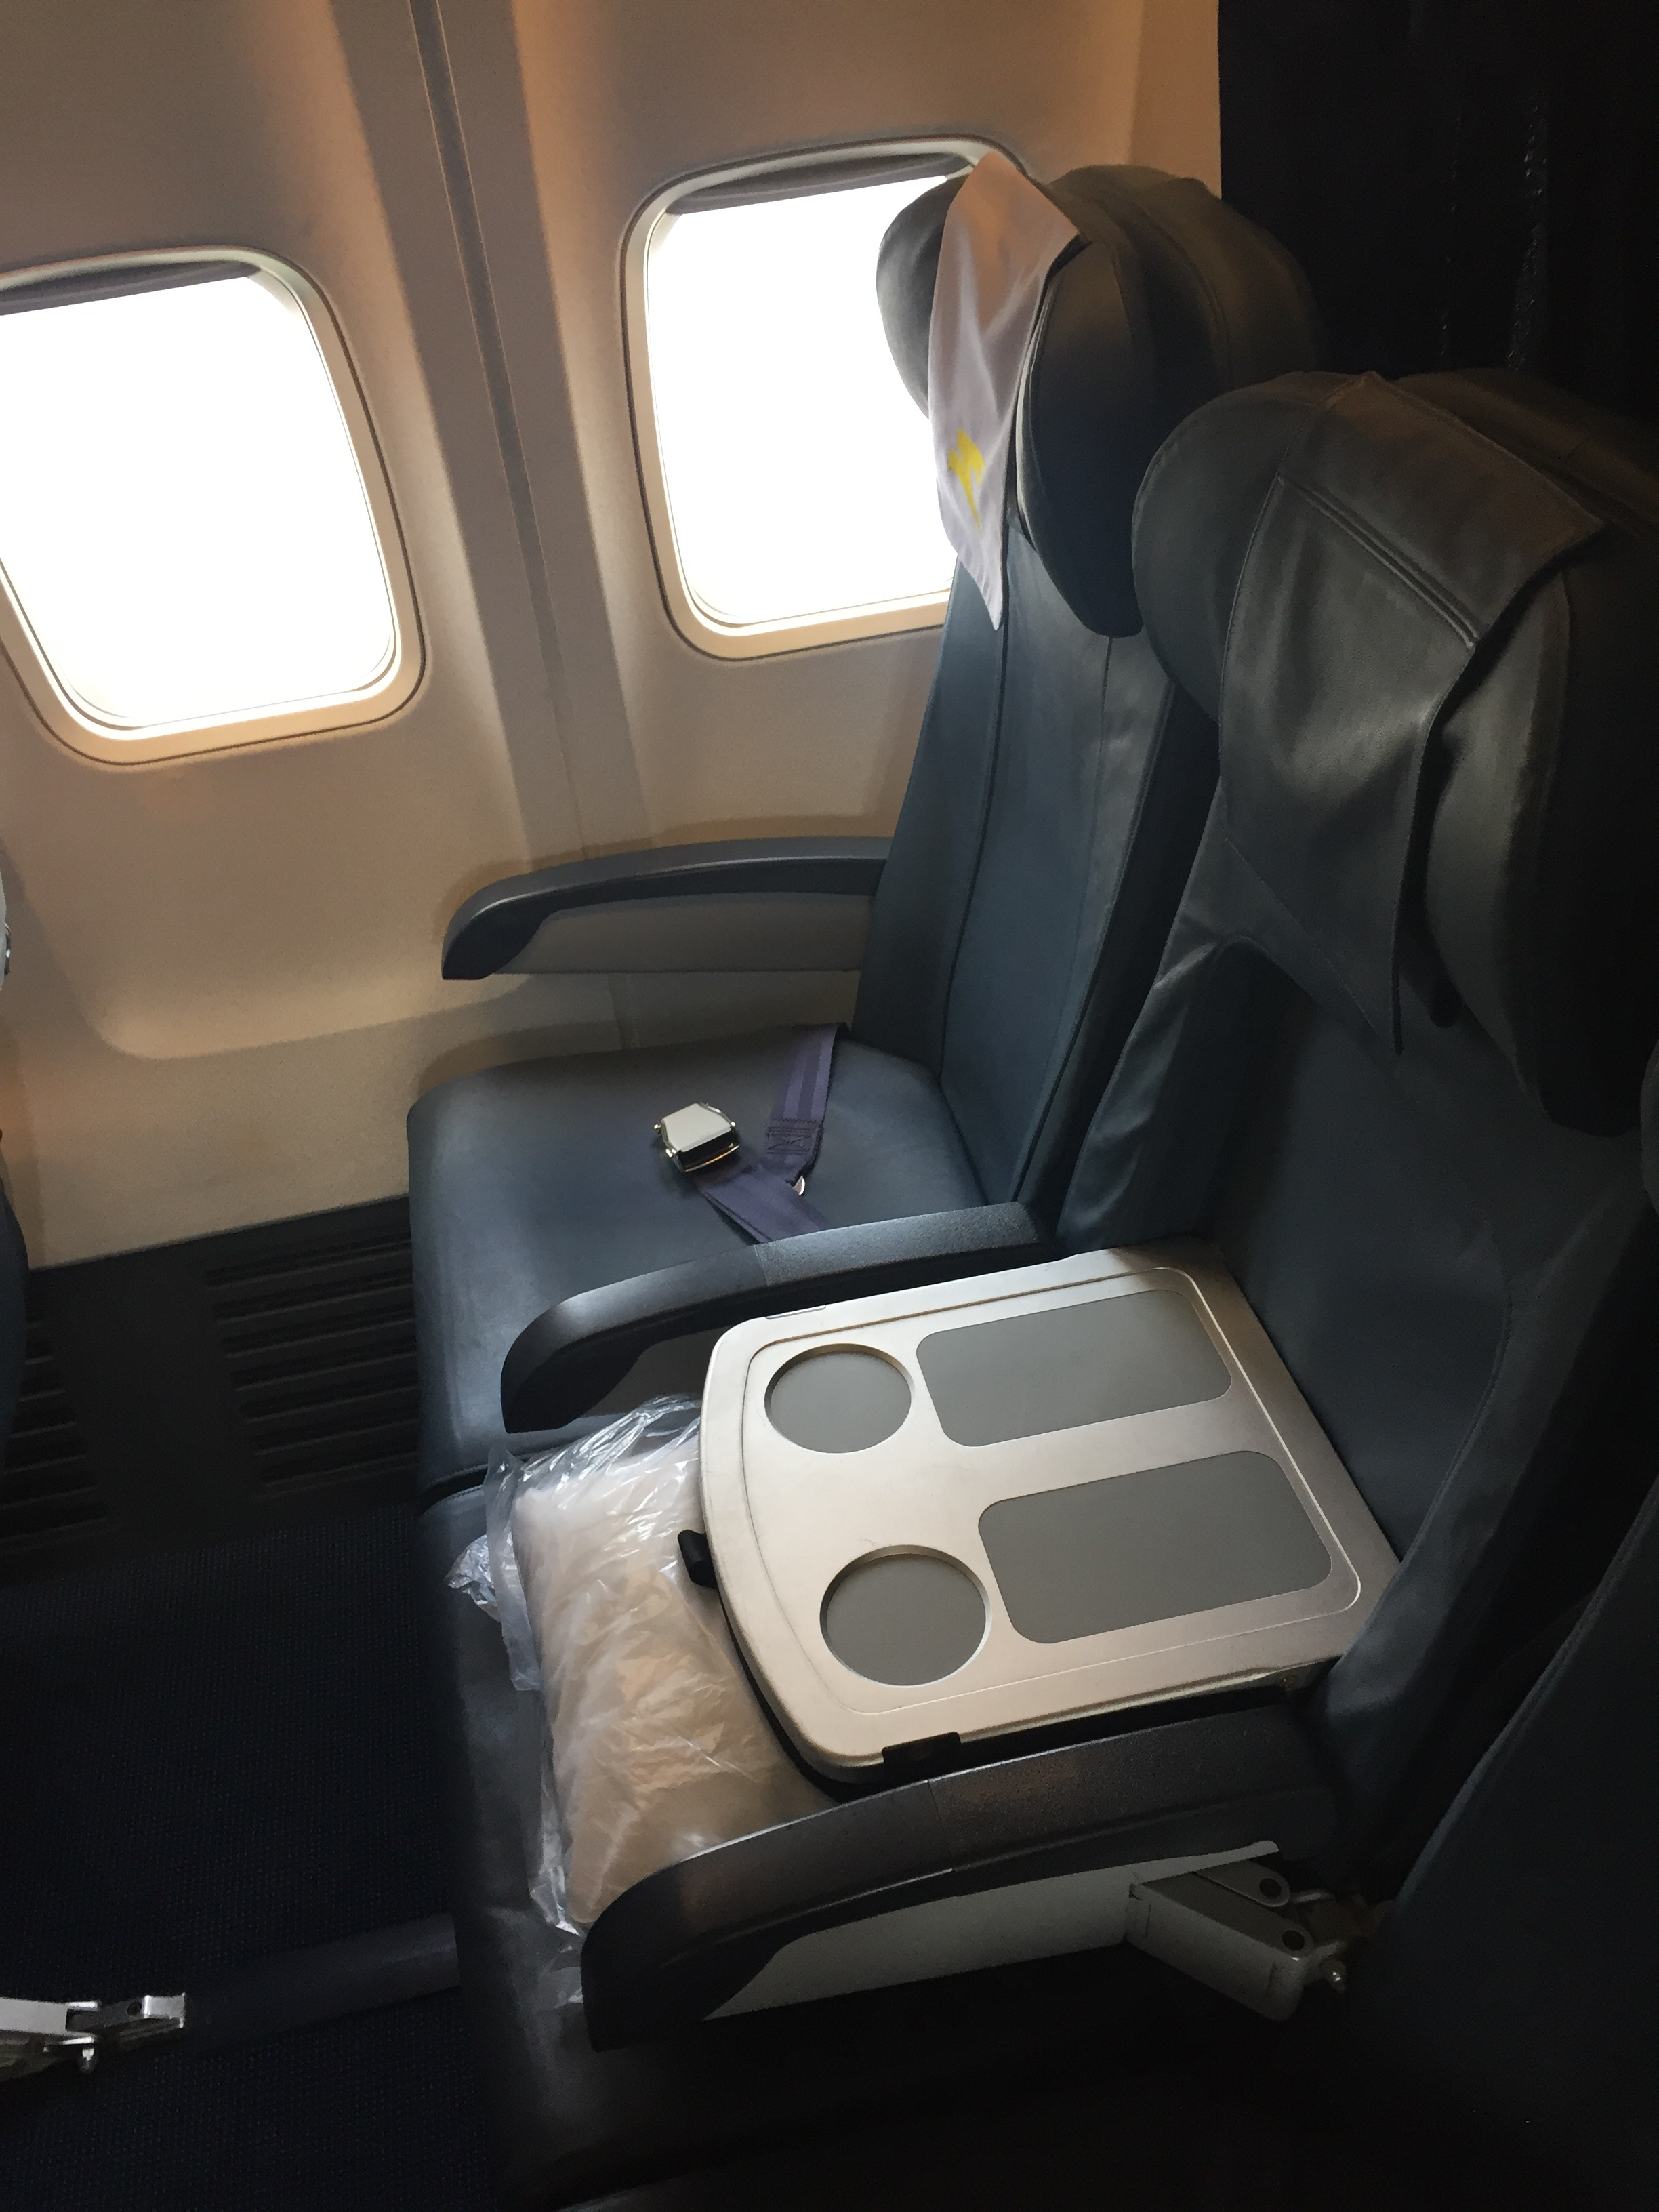 ukraine international business class.JPG